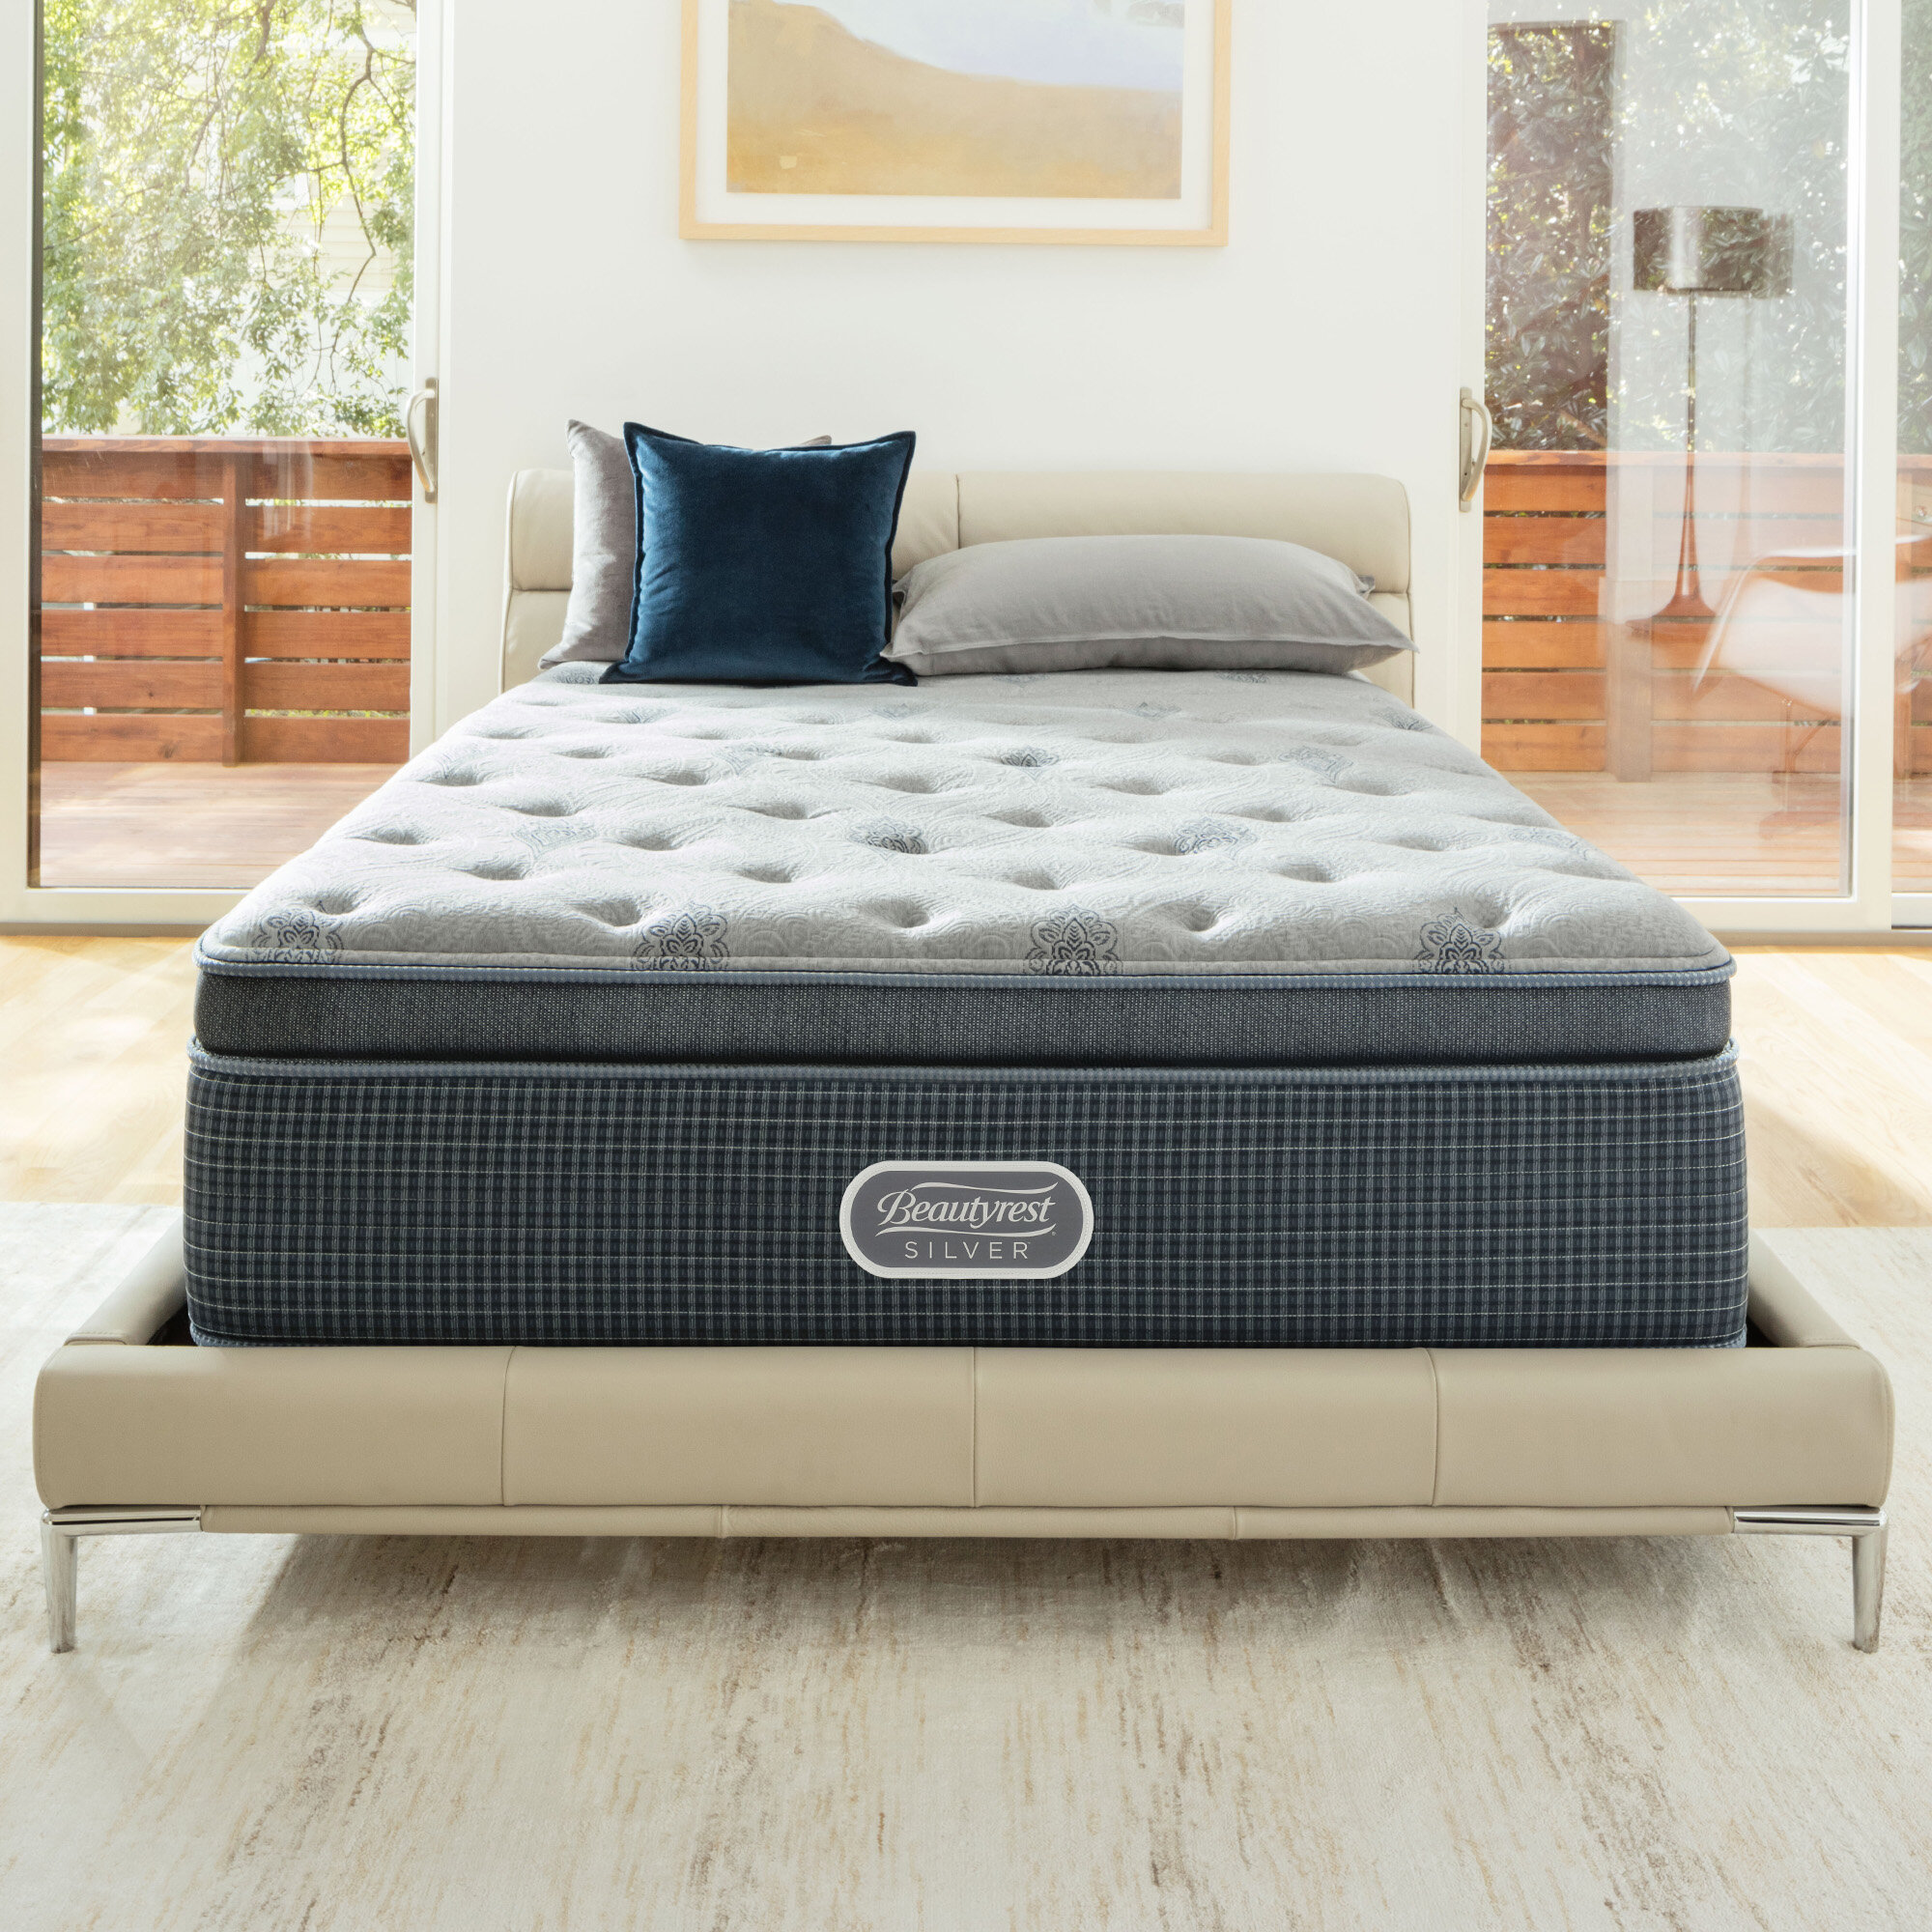 full mattress memory foam home topper top pillow serta queen and